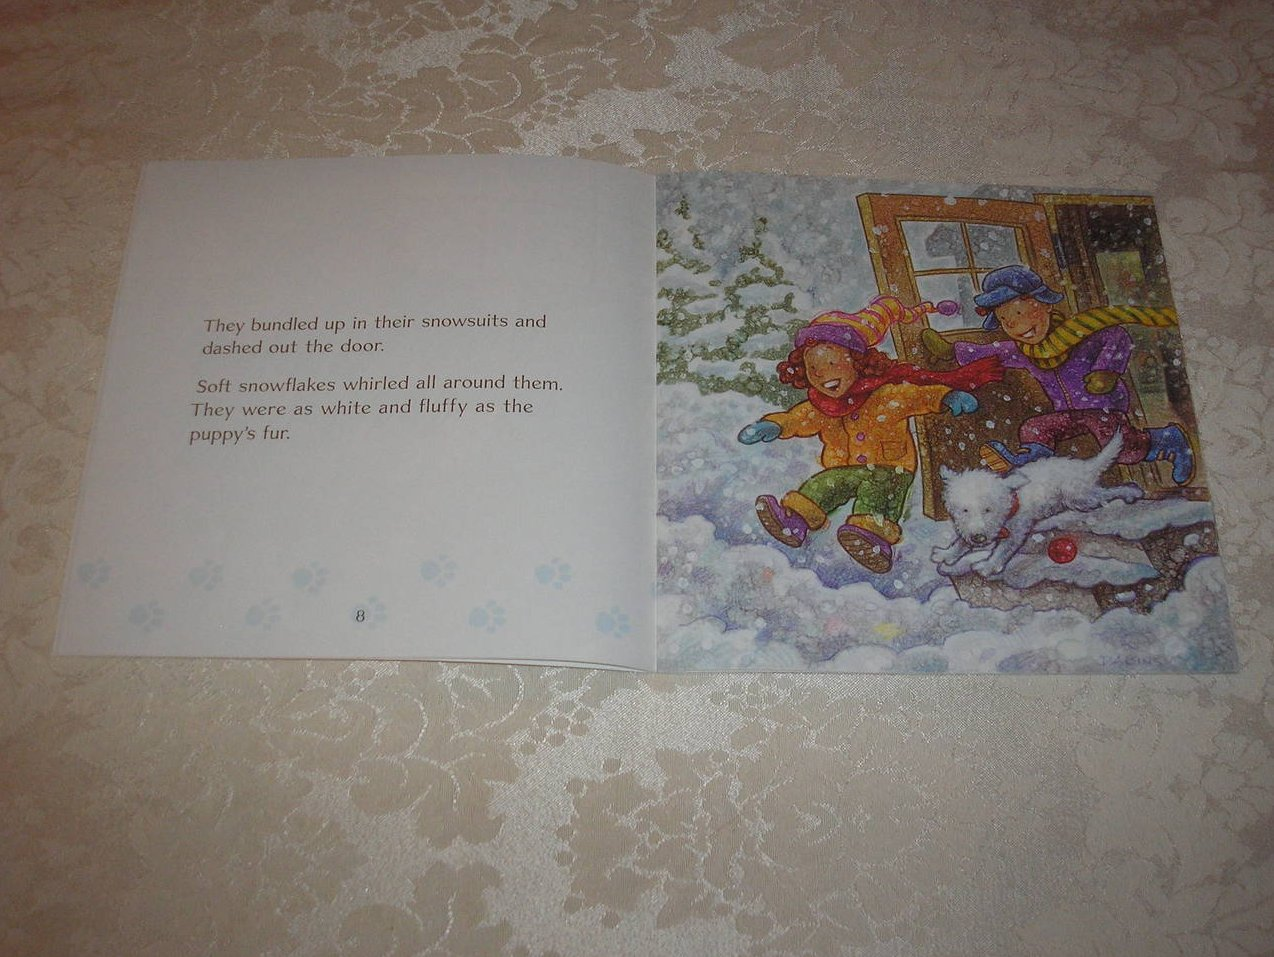 Image 2 of A Very Special Snowflake Don Hoffman Very Good Used Softcover